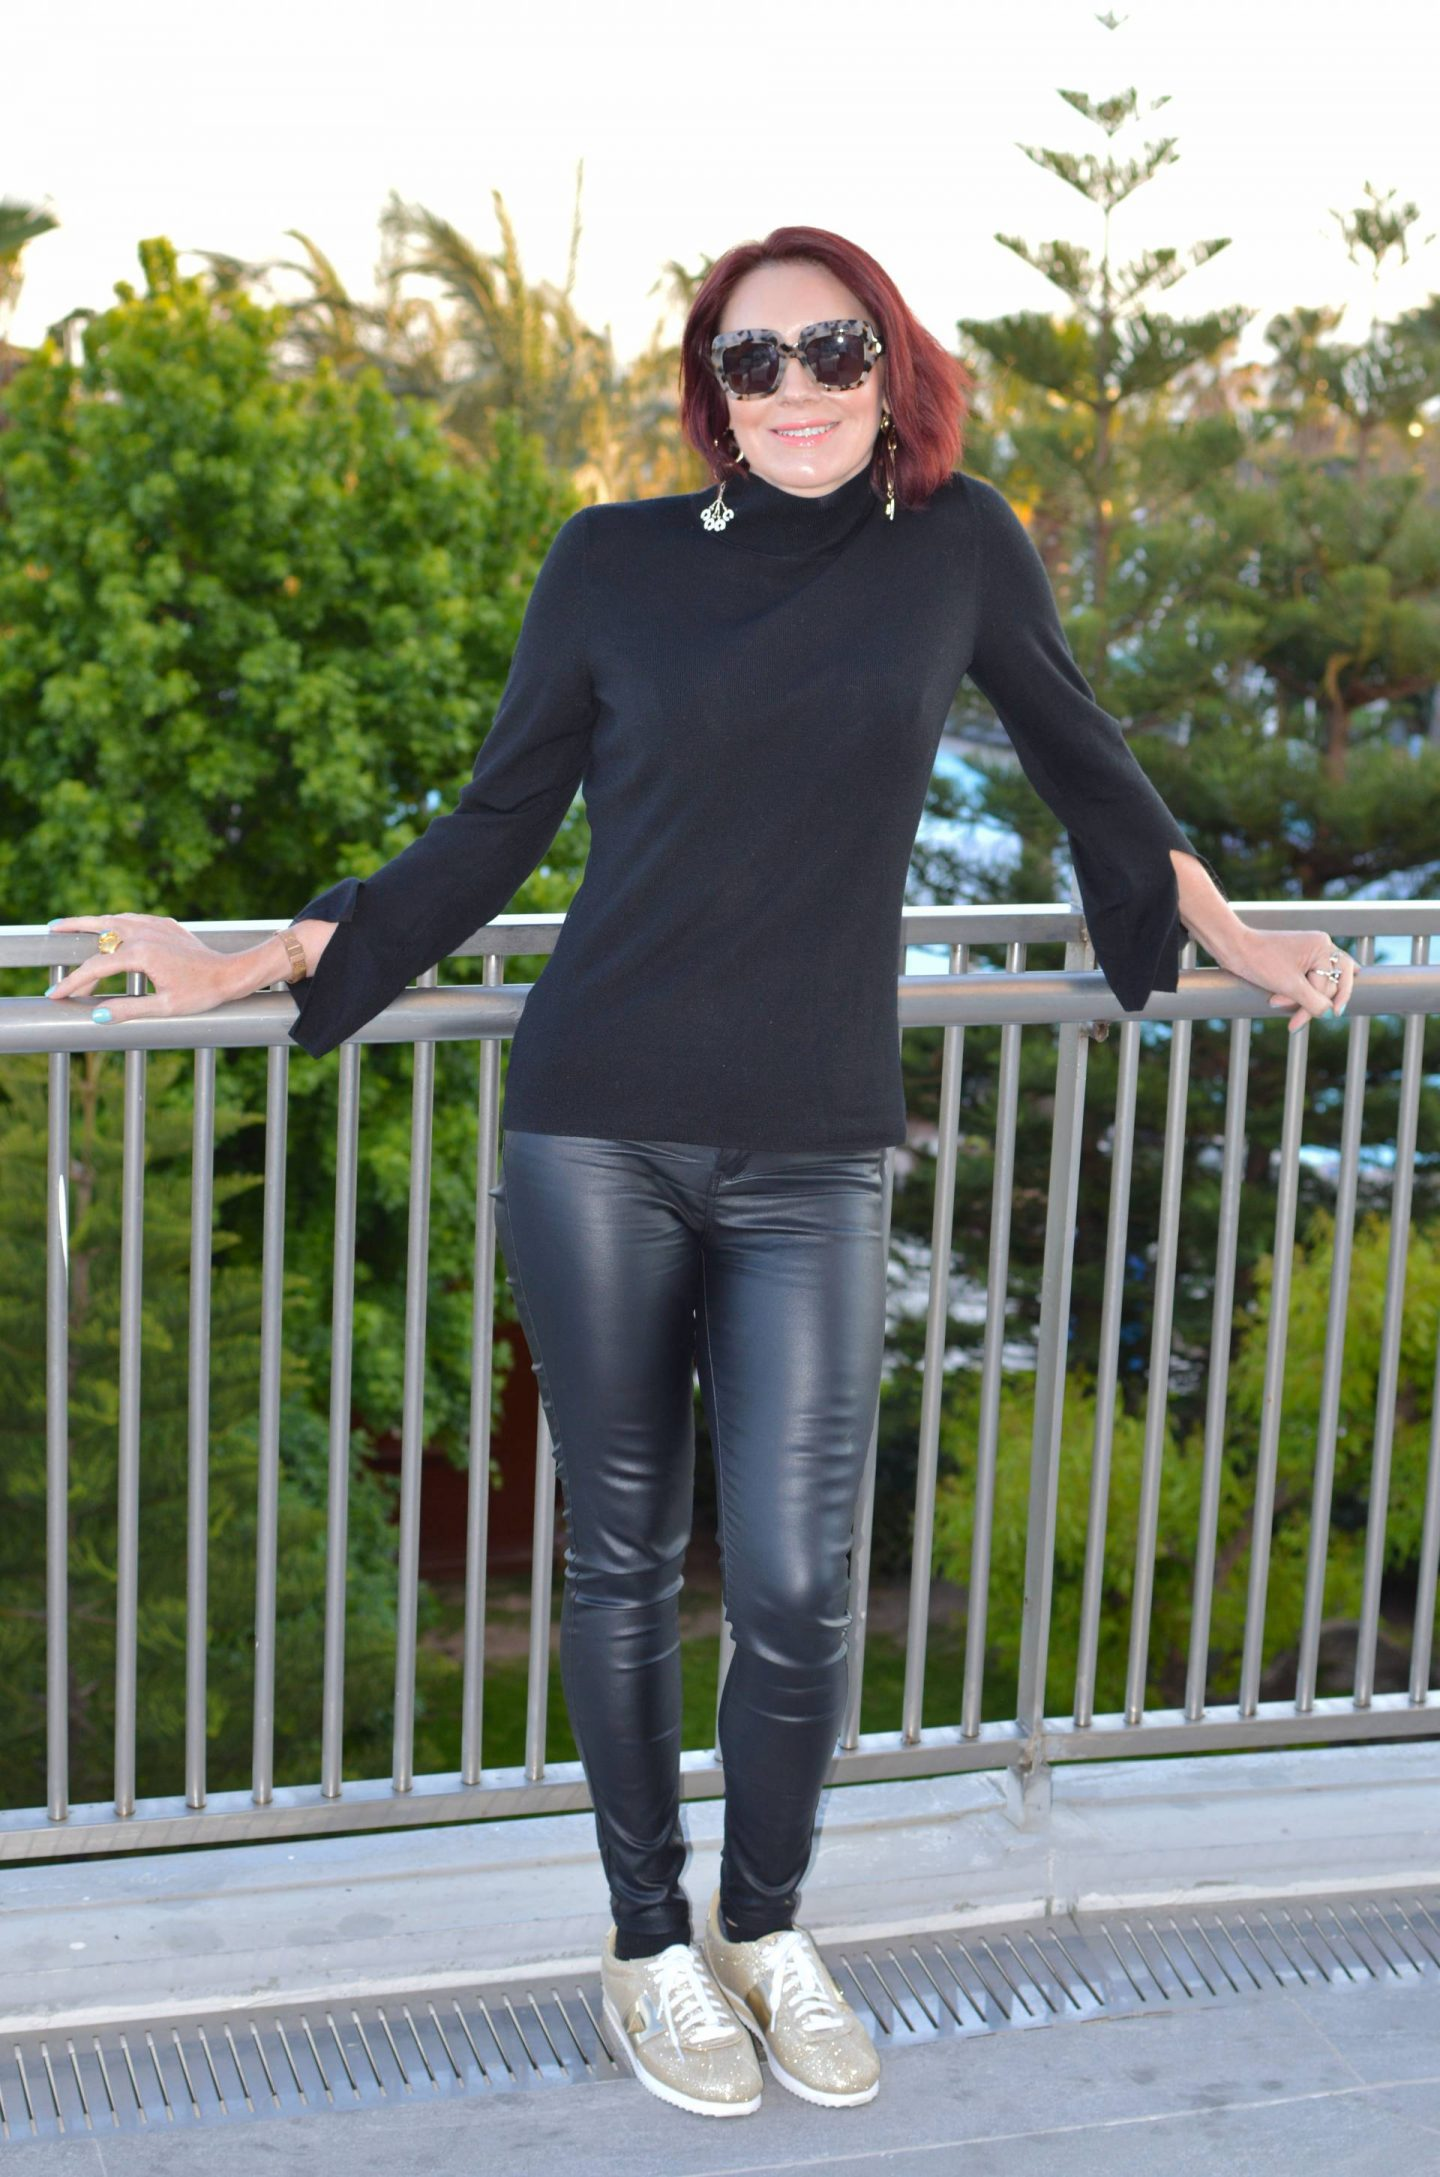 A Stylish Outfit For Travelling, Iris & Ink hign neck jumper, Frontrow coated skinny jeans, Max Mara square sunglasses